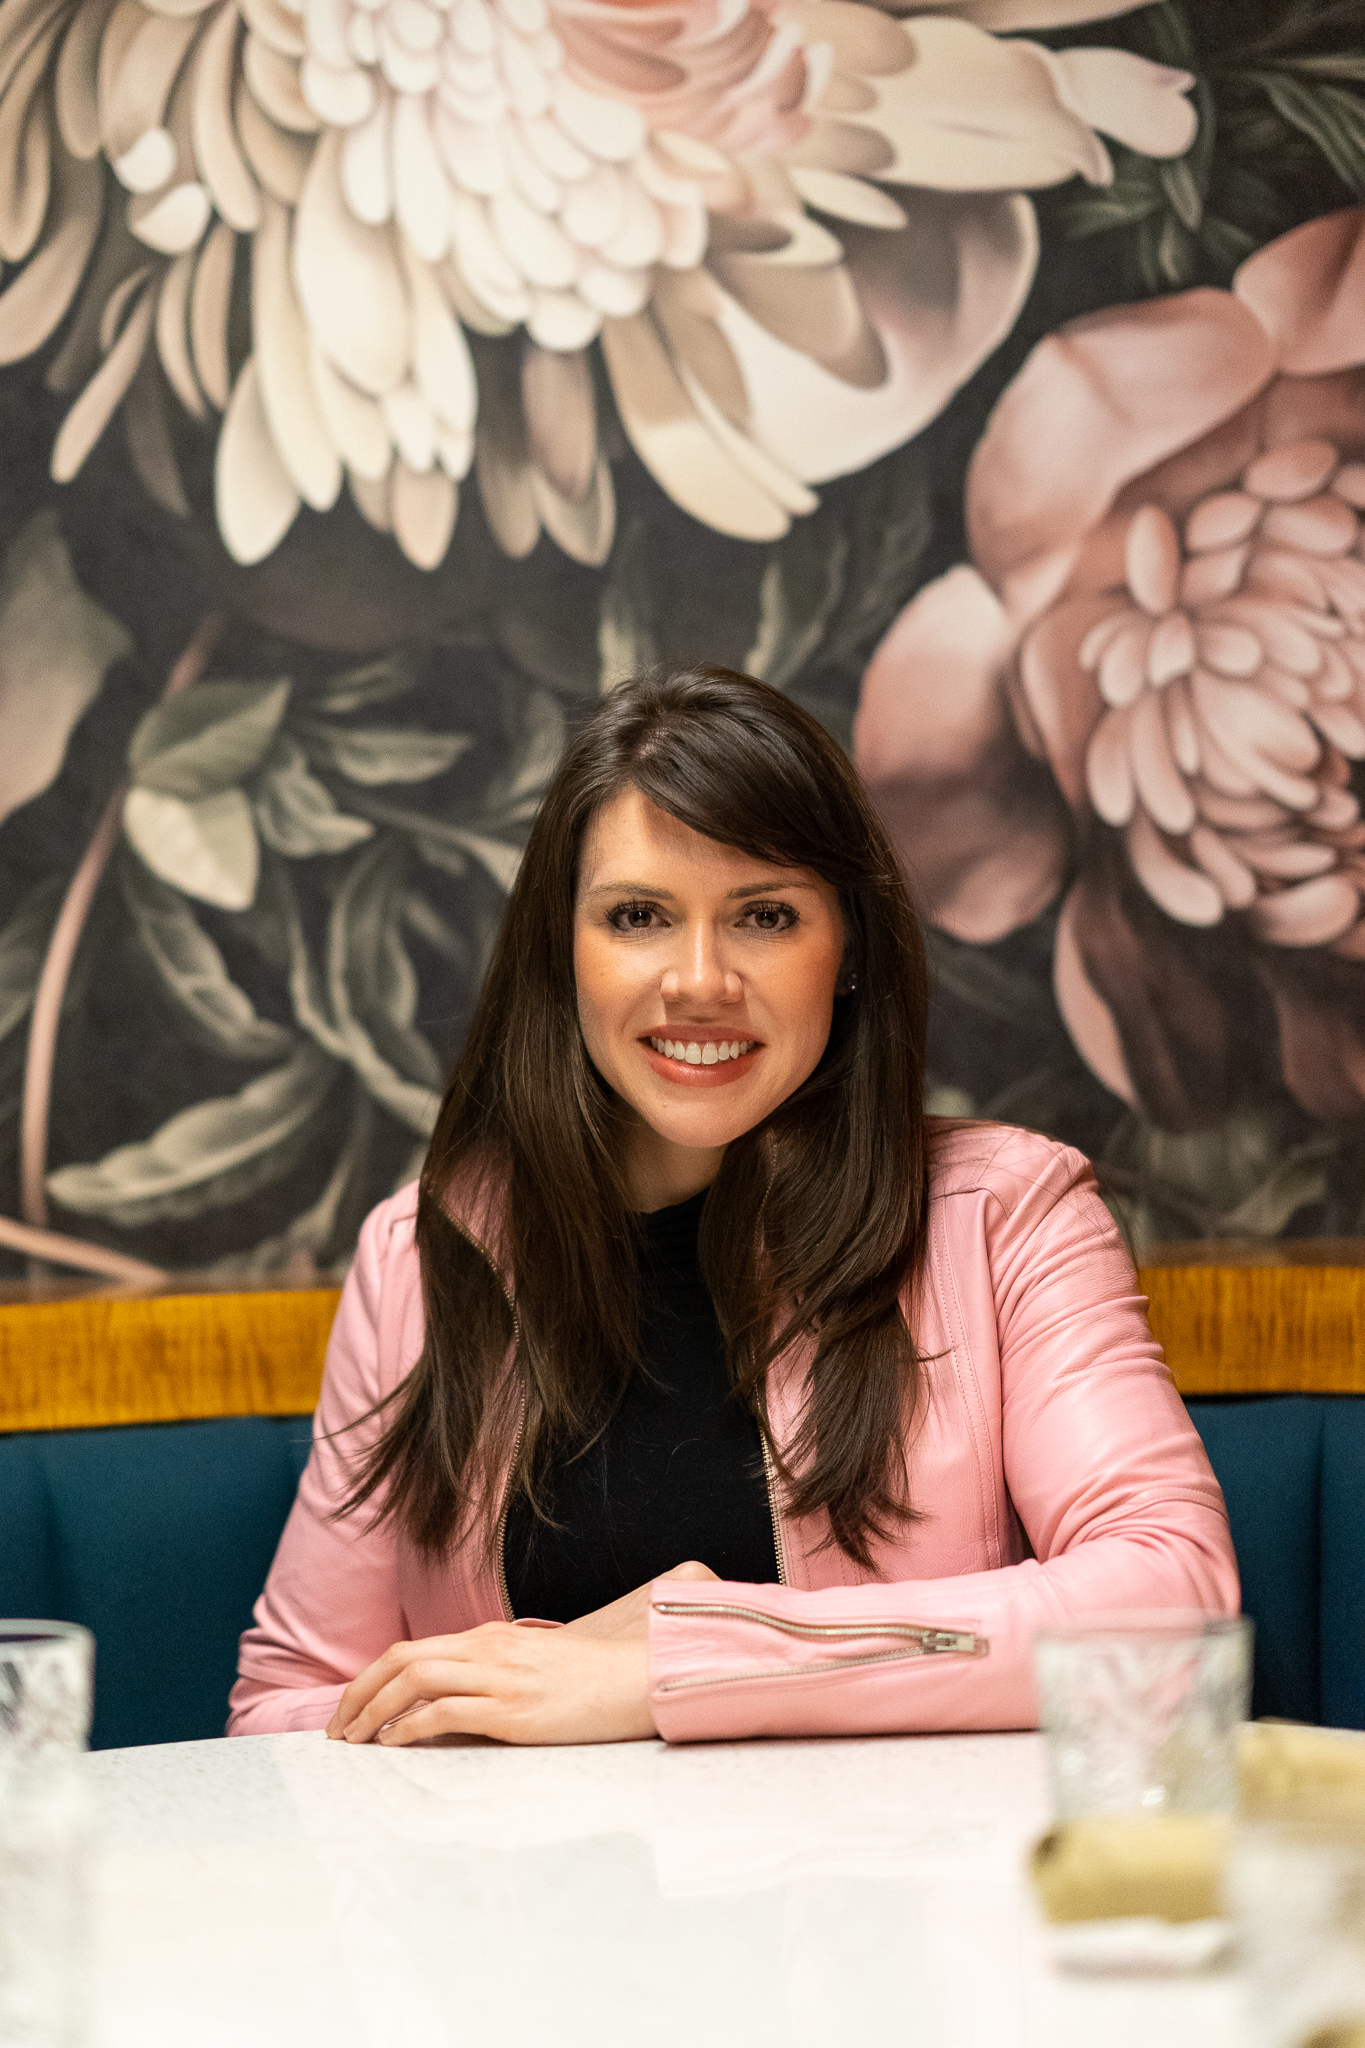 Photo of Julia Bonner. Julia is a communications expert and founder of Pierce Public Relations. Julia is sitting at a table at Mockingbird Restaurant, Nashville, TN, wearing a pink leather jacket and a beautiful, natural smile. Julia is surrounded by a floral wallpaper backdrop.